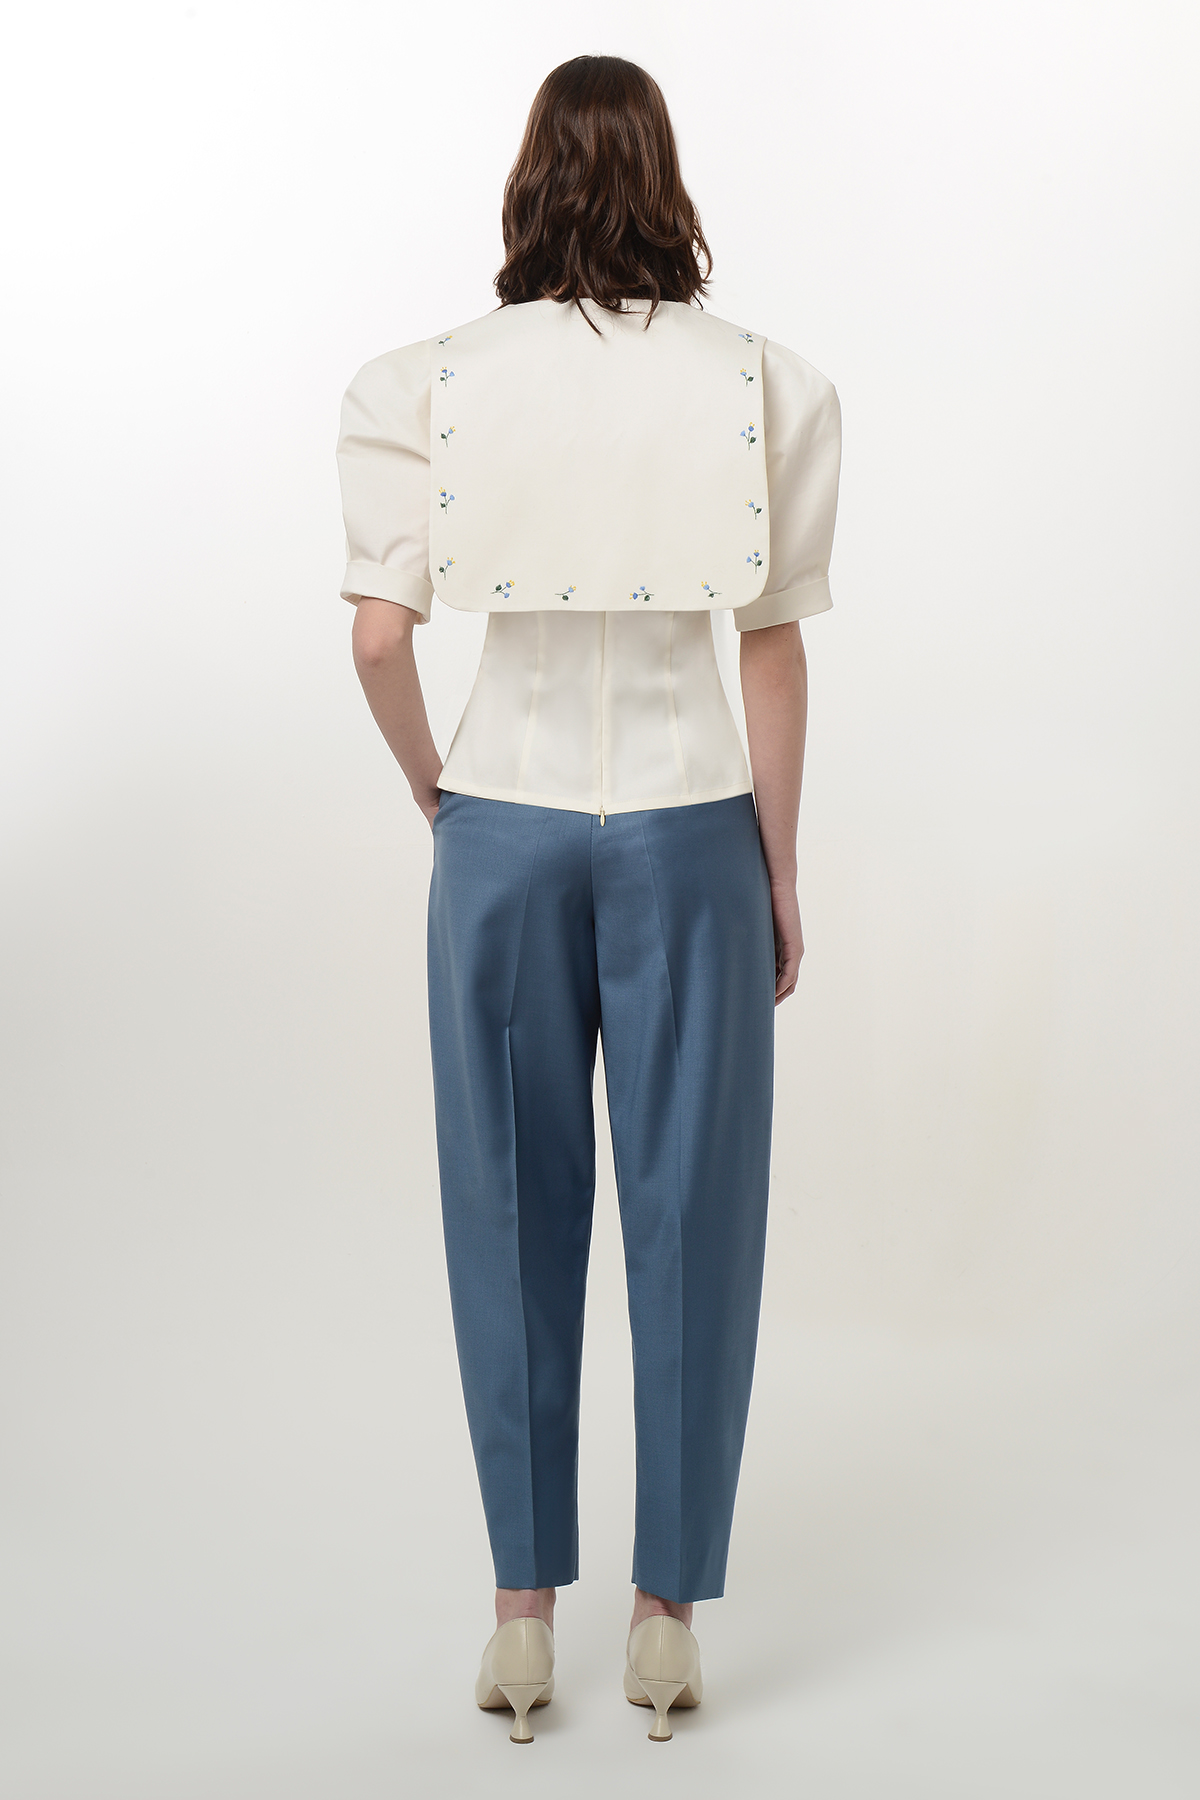 White blouse with embroidery collar 2